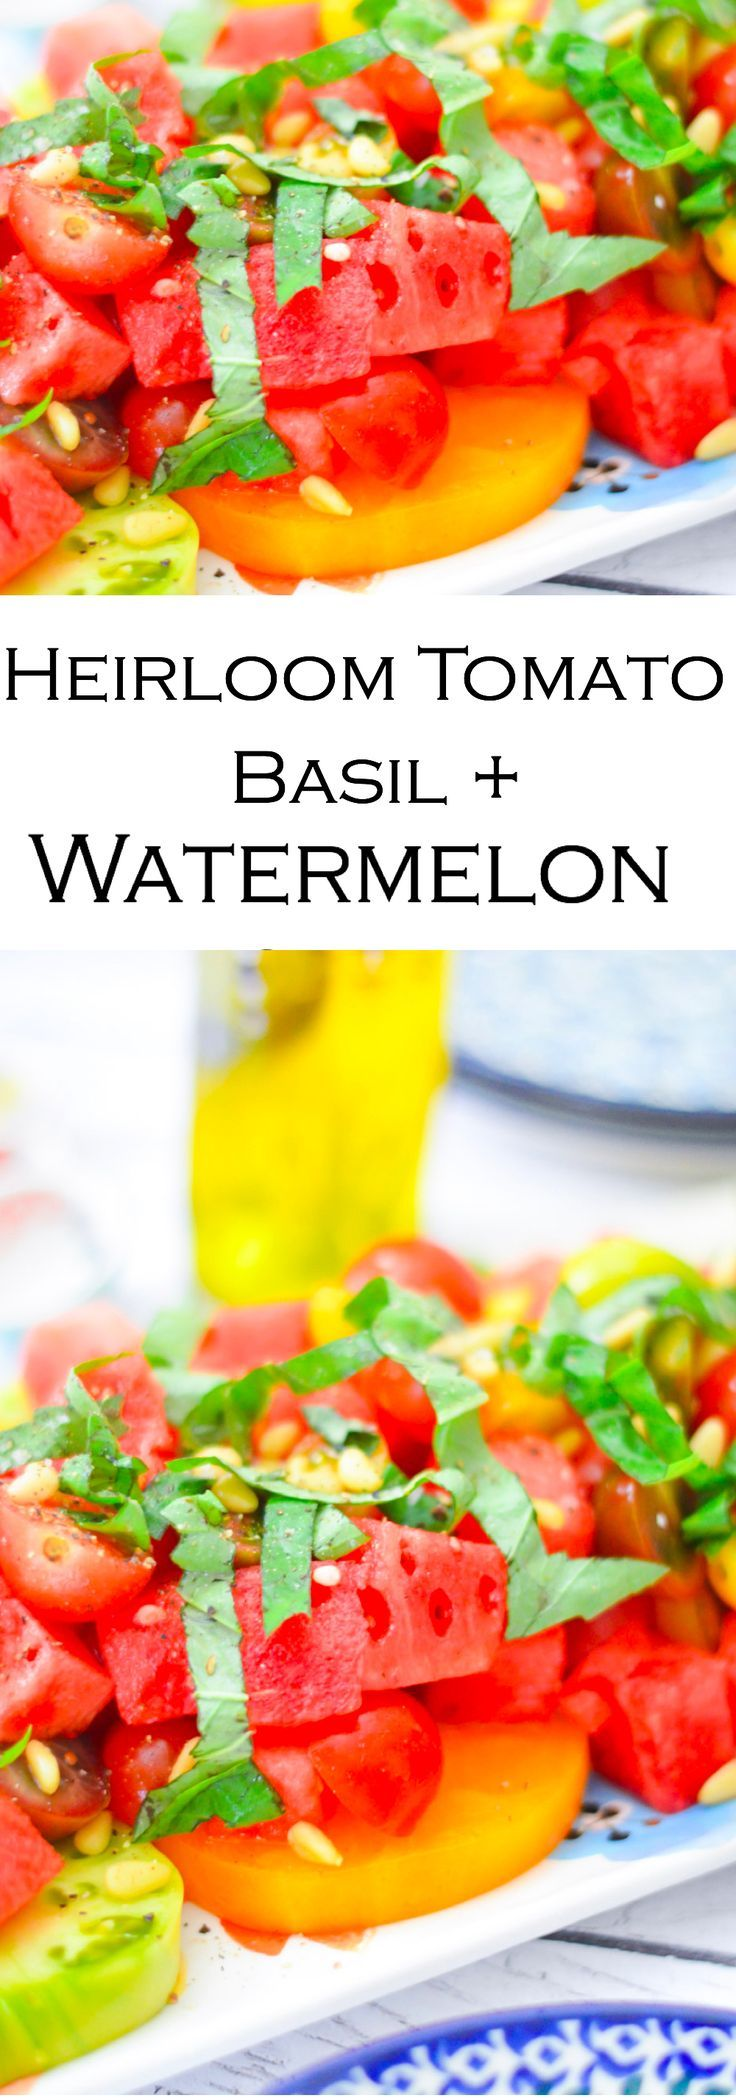 The perfect summer salad, this heirloom tomato, basil, and watermelon salad comes together quickly and is delicious. Super easy and perfect for vegan, vegetarian, and meat-eaters alike!!